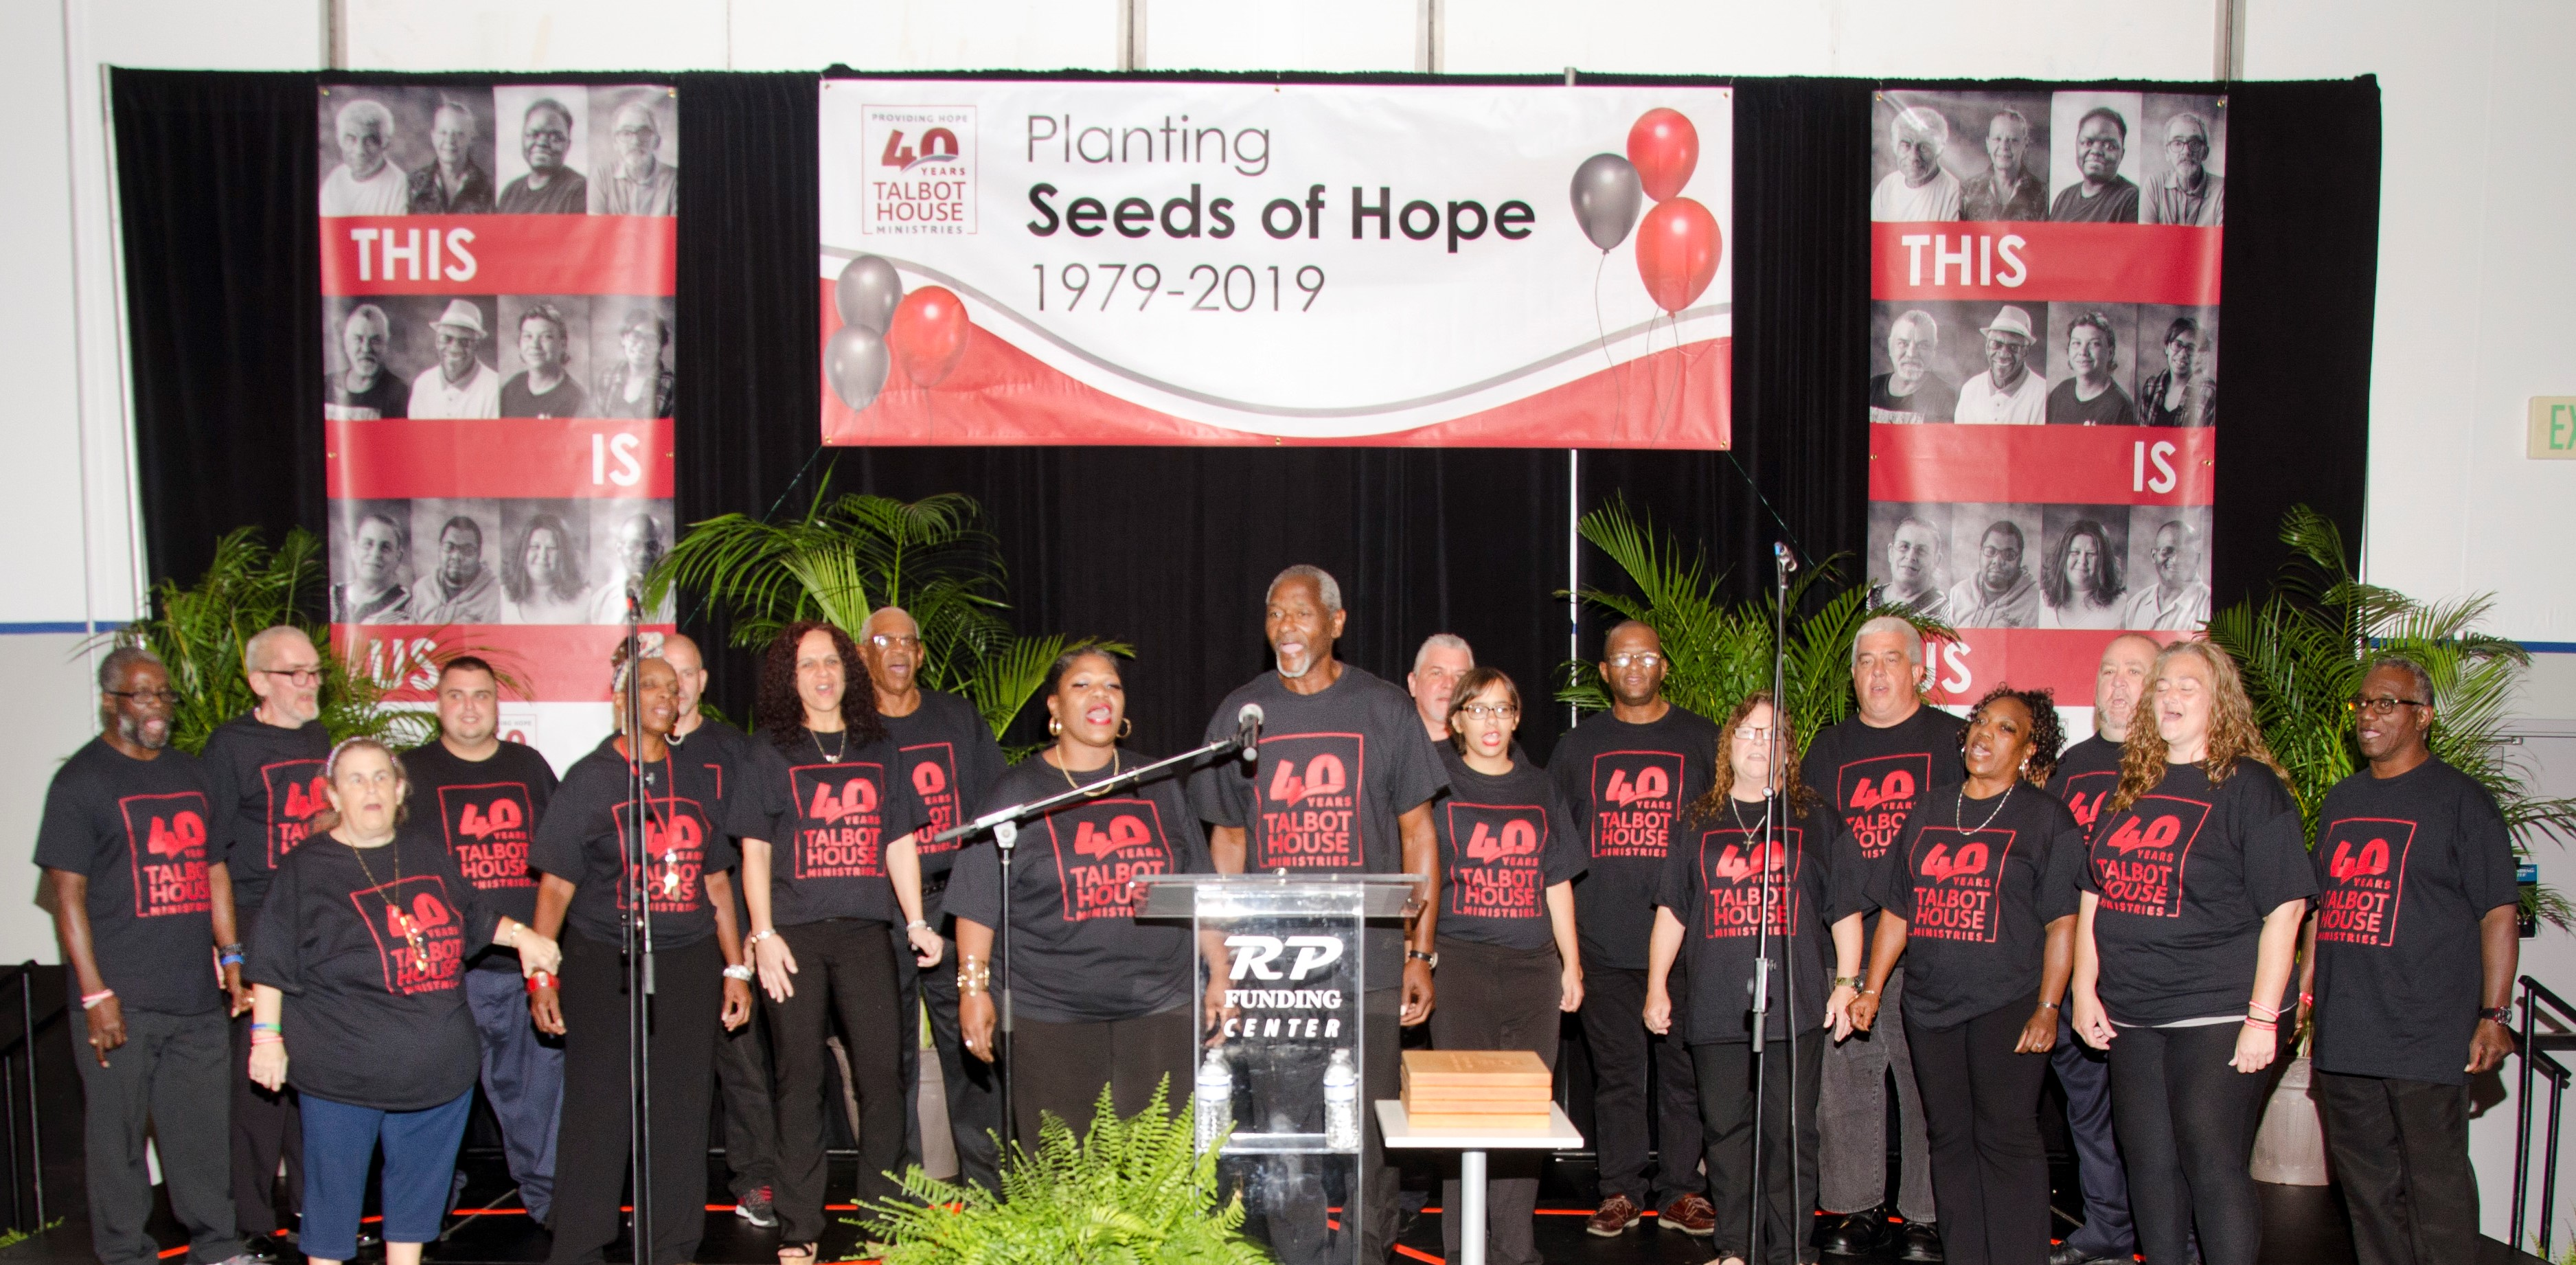 Seeds of Hope 2019